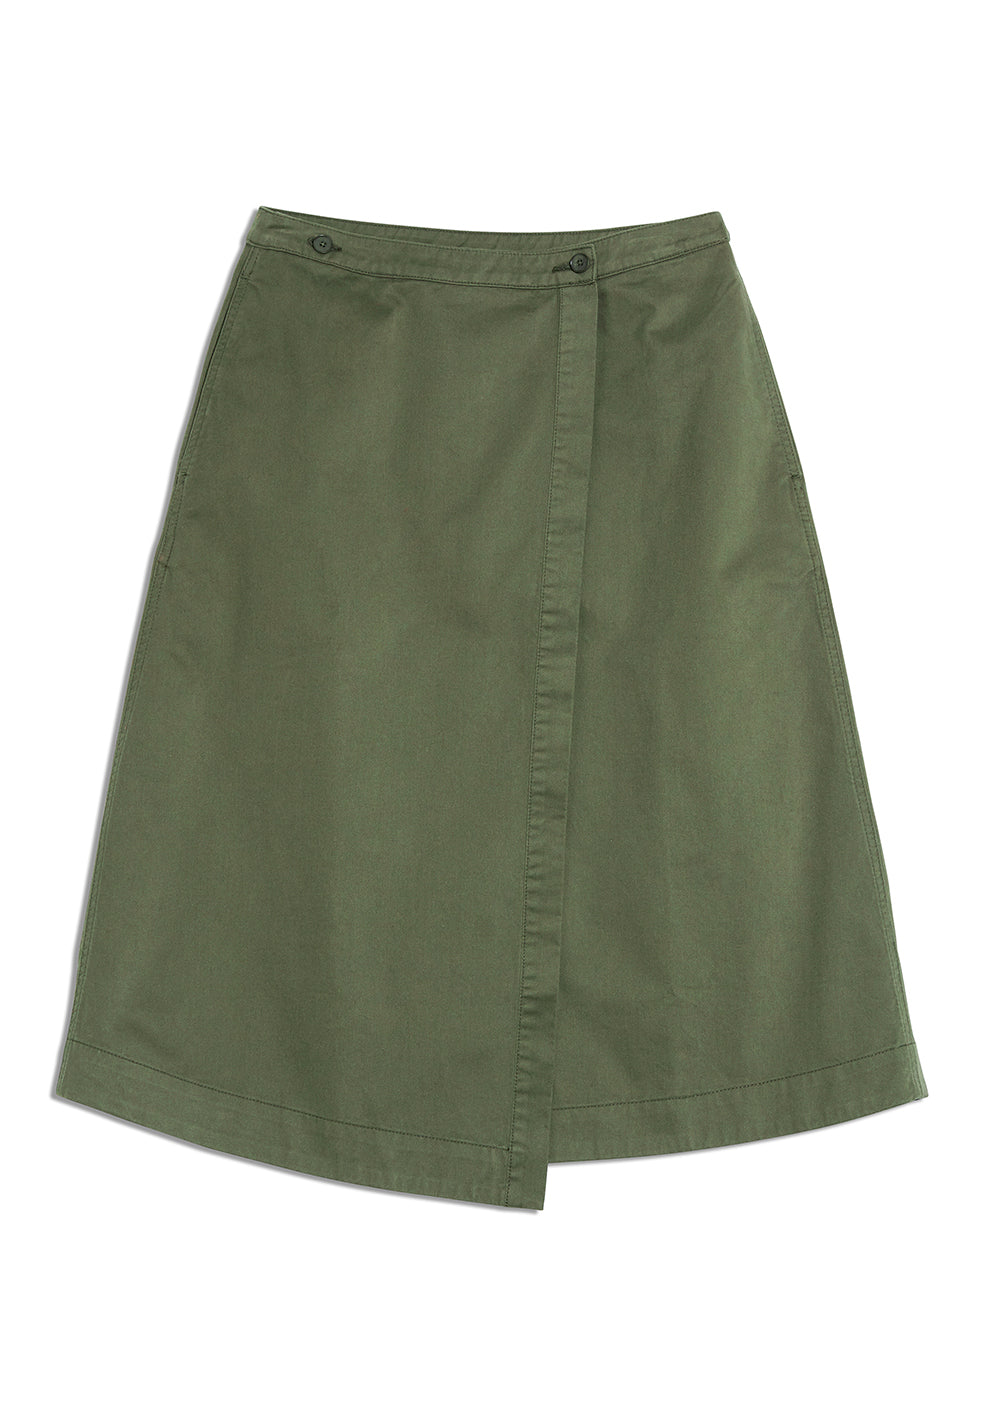 Villaa in Moss Green-Skirt-Sancho's Dress